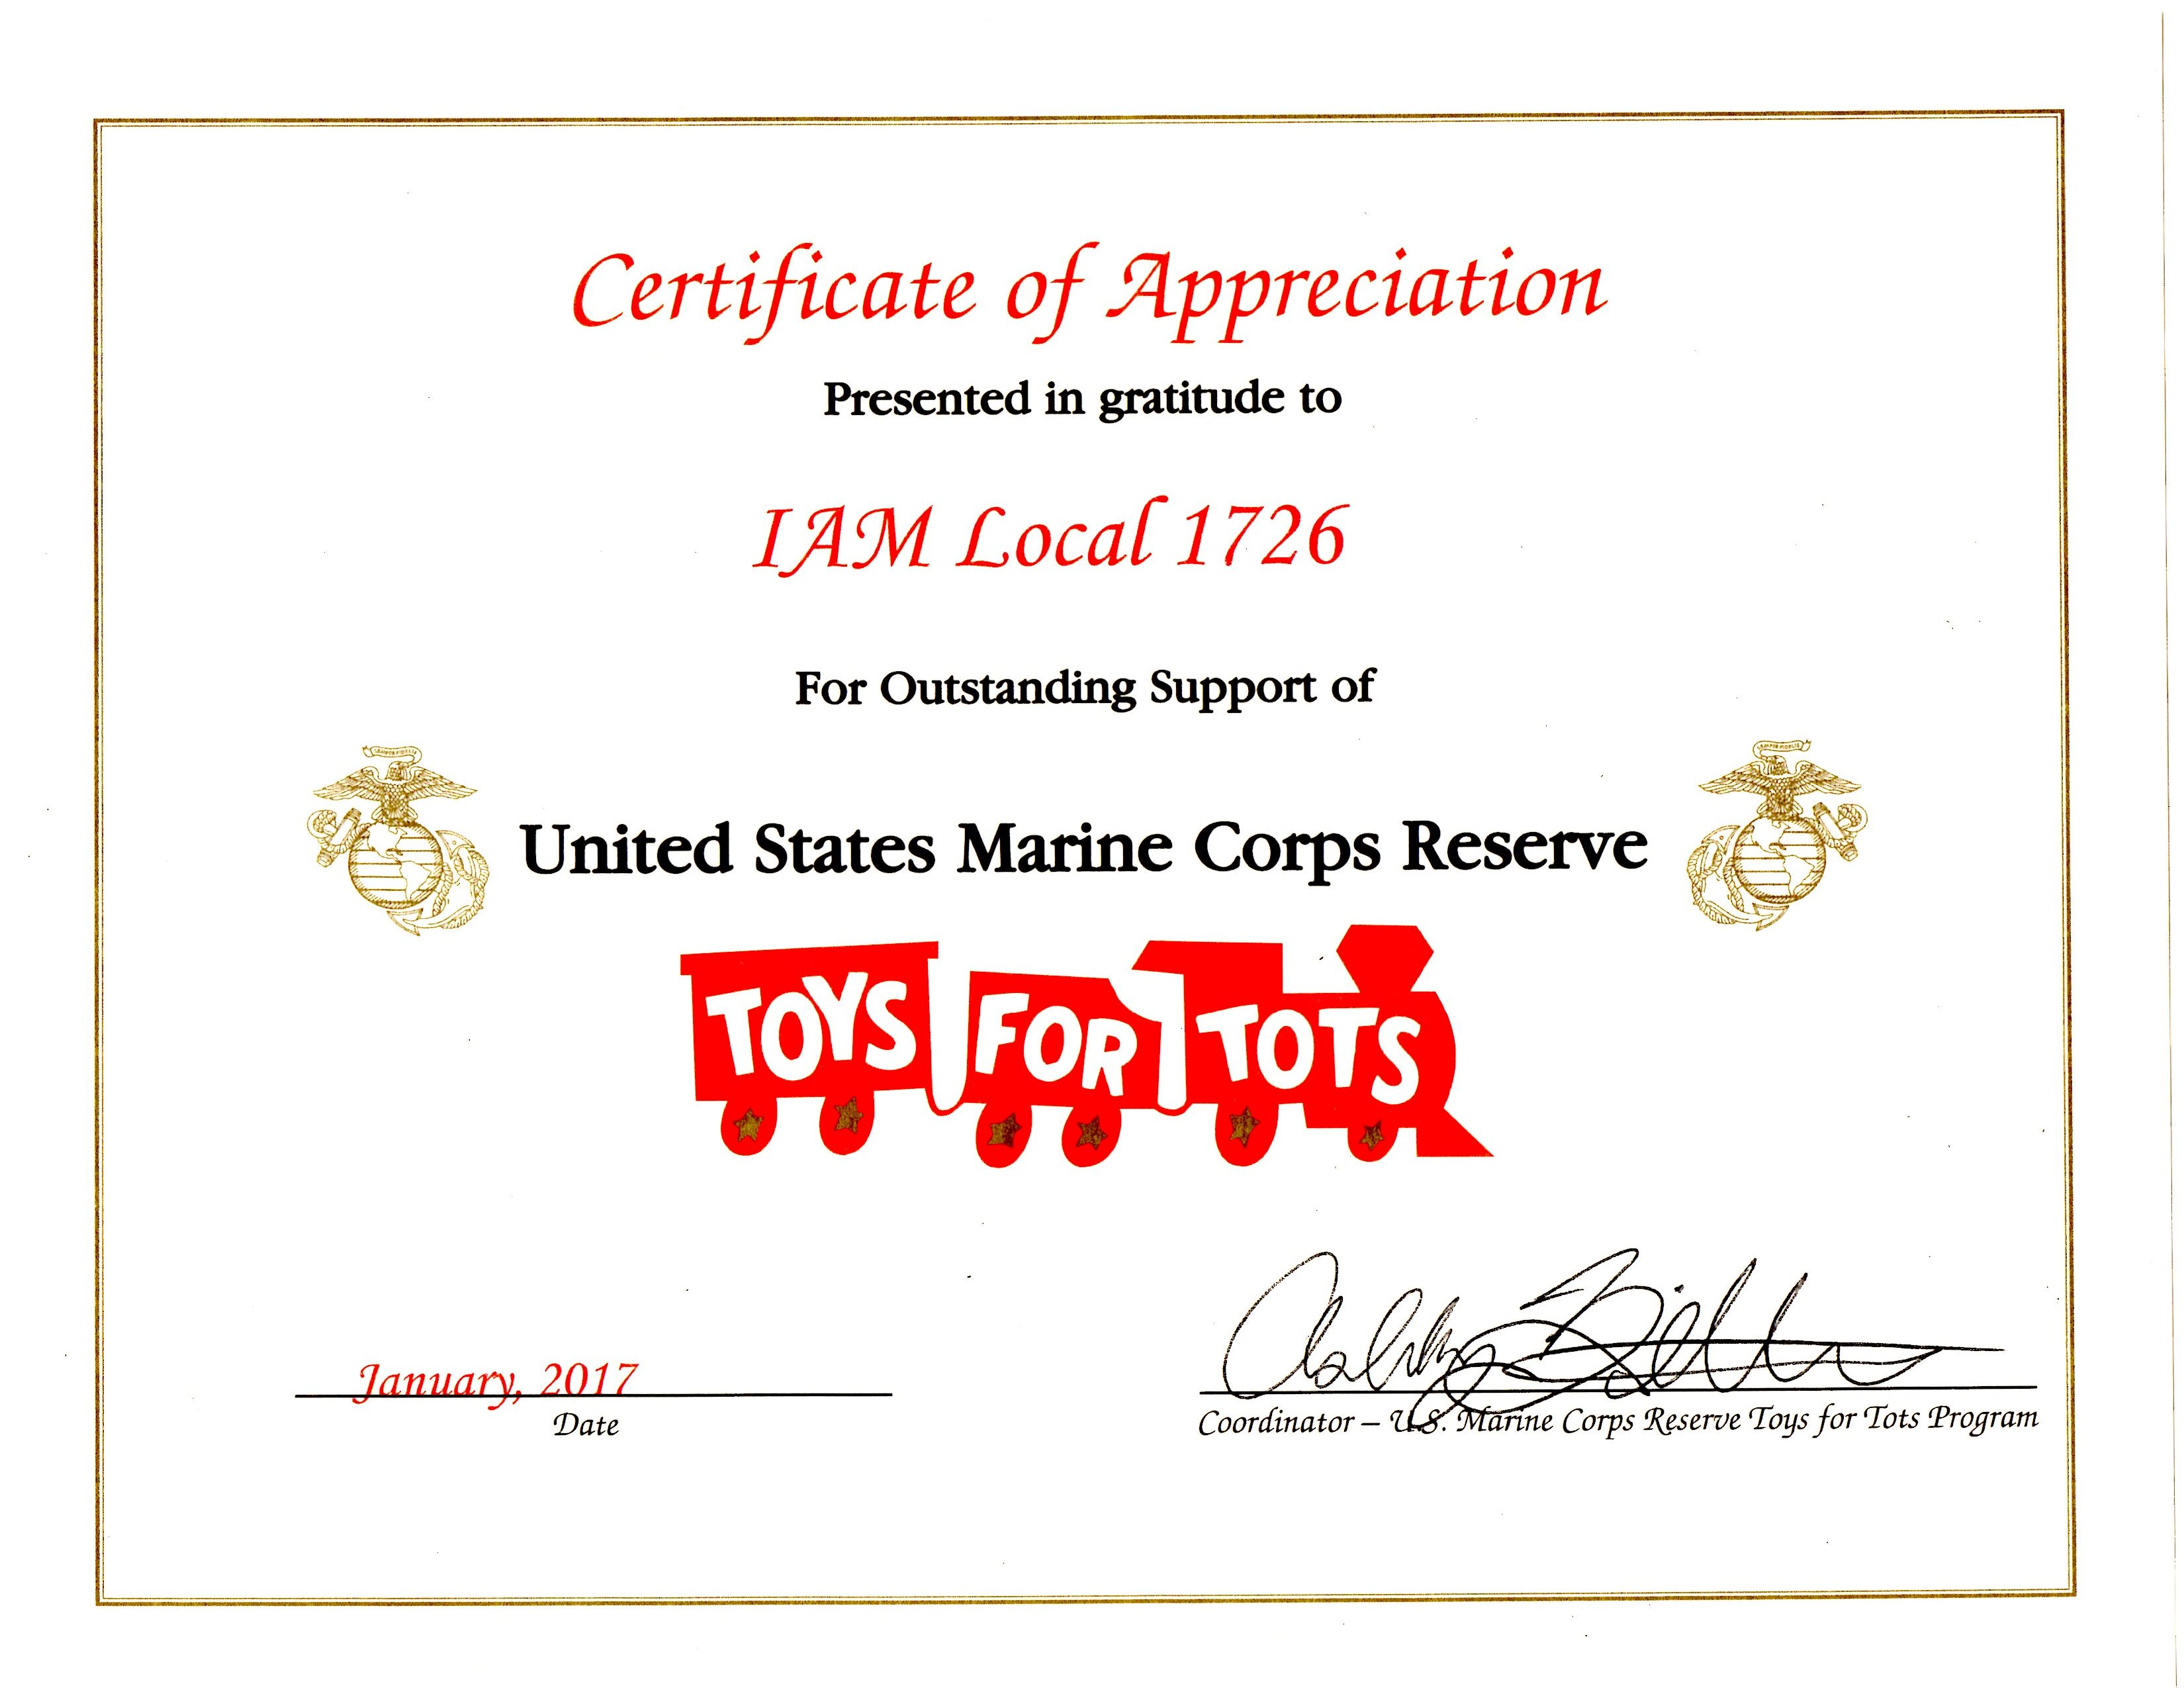 Announcement Email Sample Toys For Tots : Usmc thanks local for contributions to toys tots